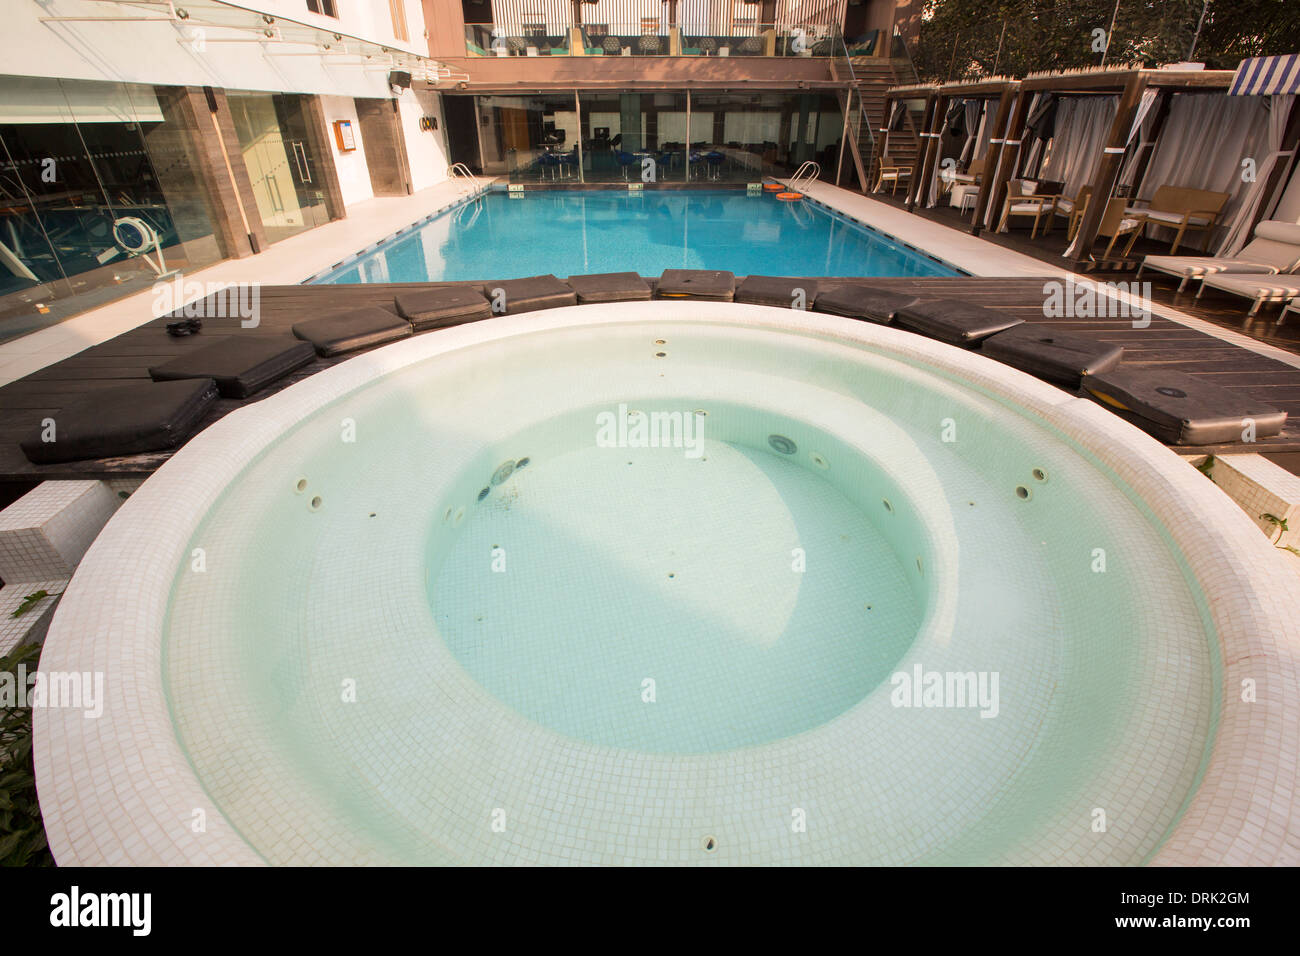 Jacuzzi Pool India Swimming Tiger Pool Stock Photos Swimming Tiger Pool Stock